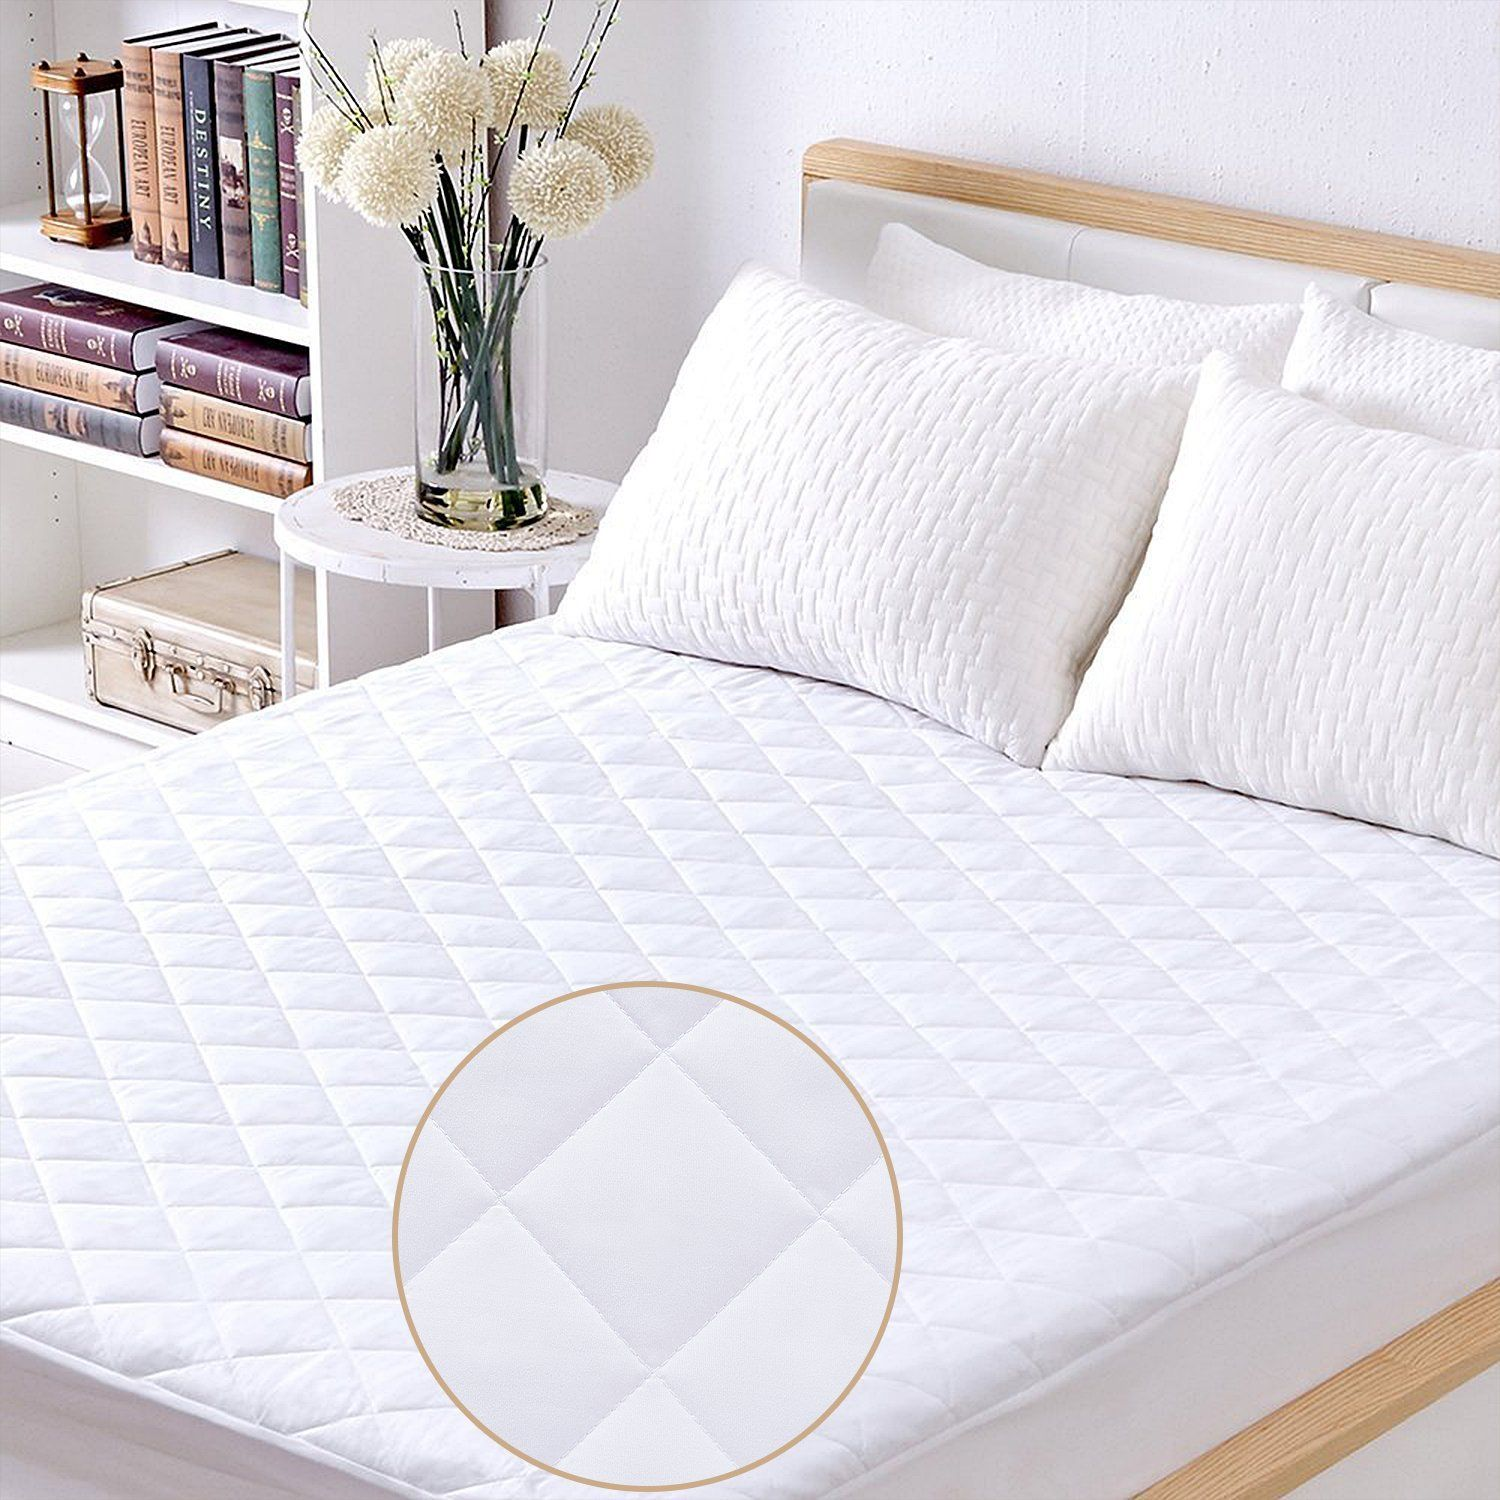 Hypoallergenic Mattress Pad Mattress Protector Quilted Fitted Bed Cover